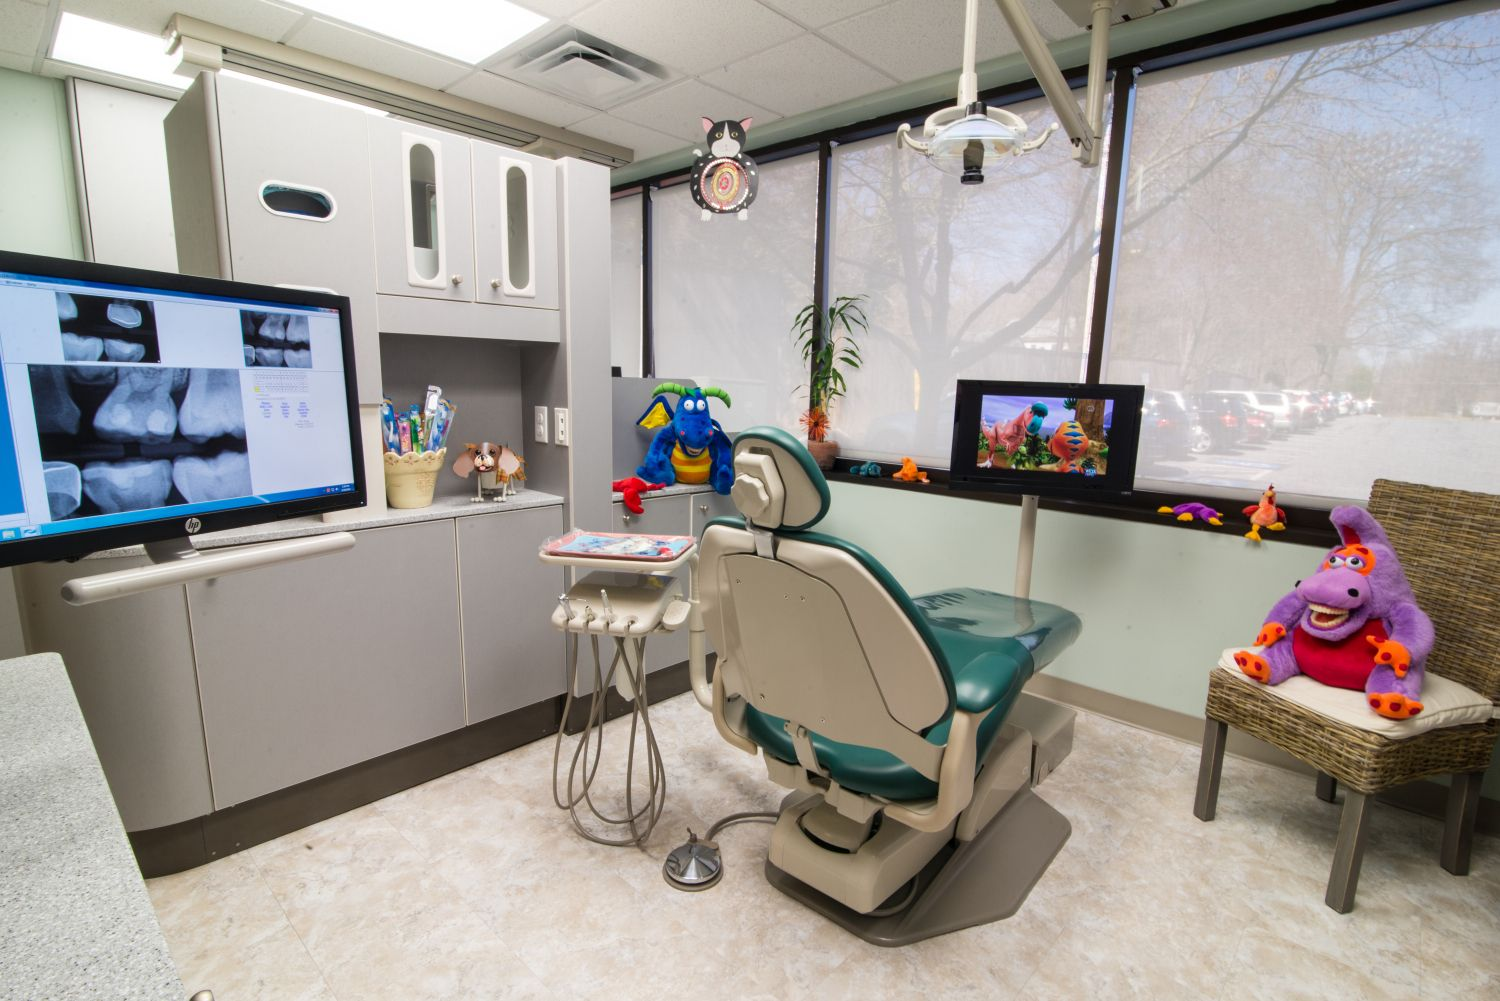 DentistOffices_3-compressor.jpg